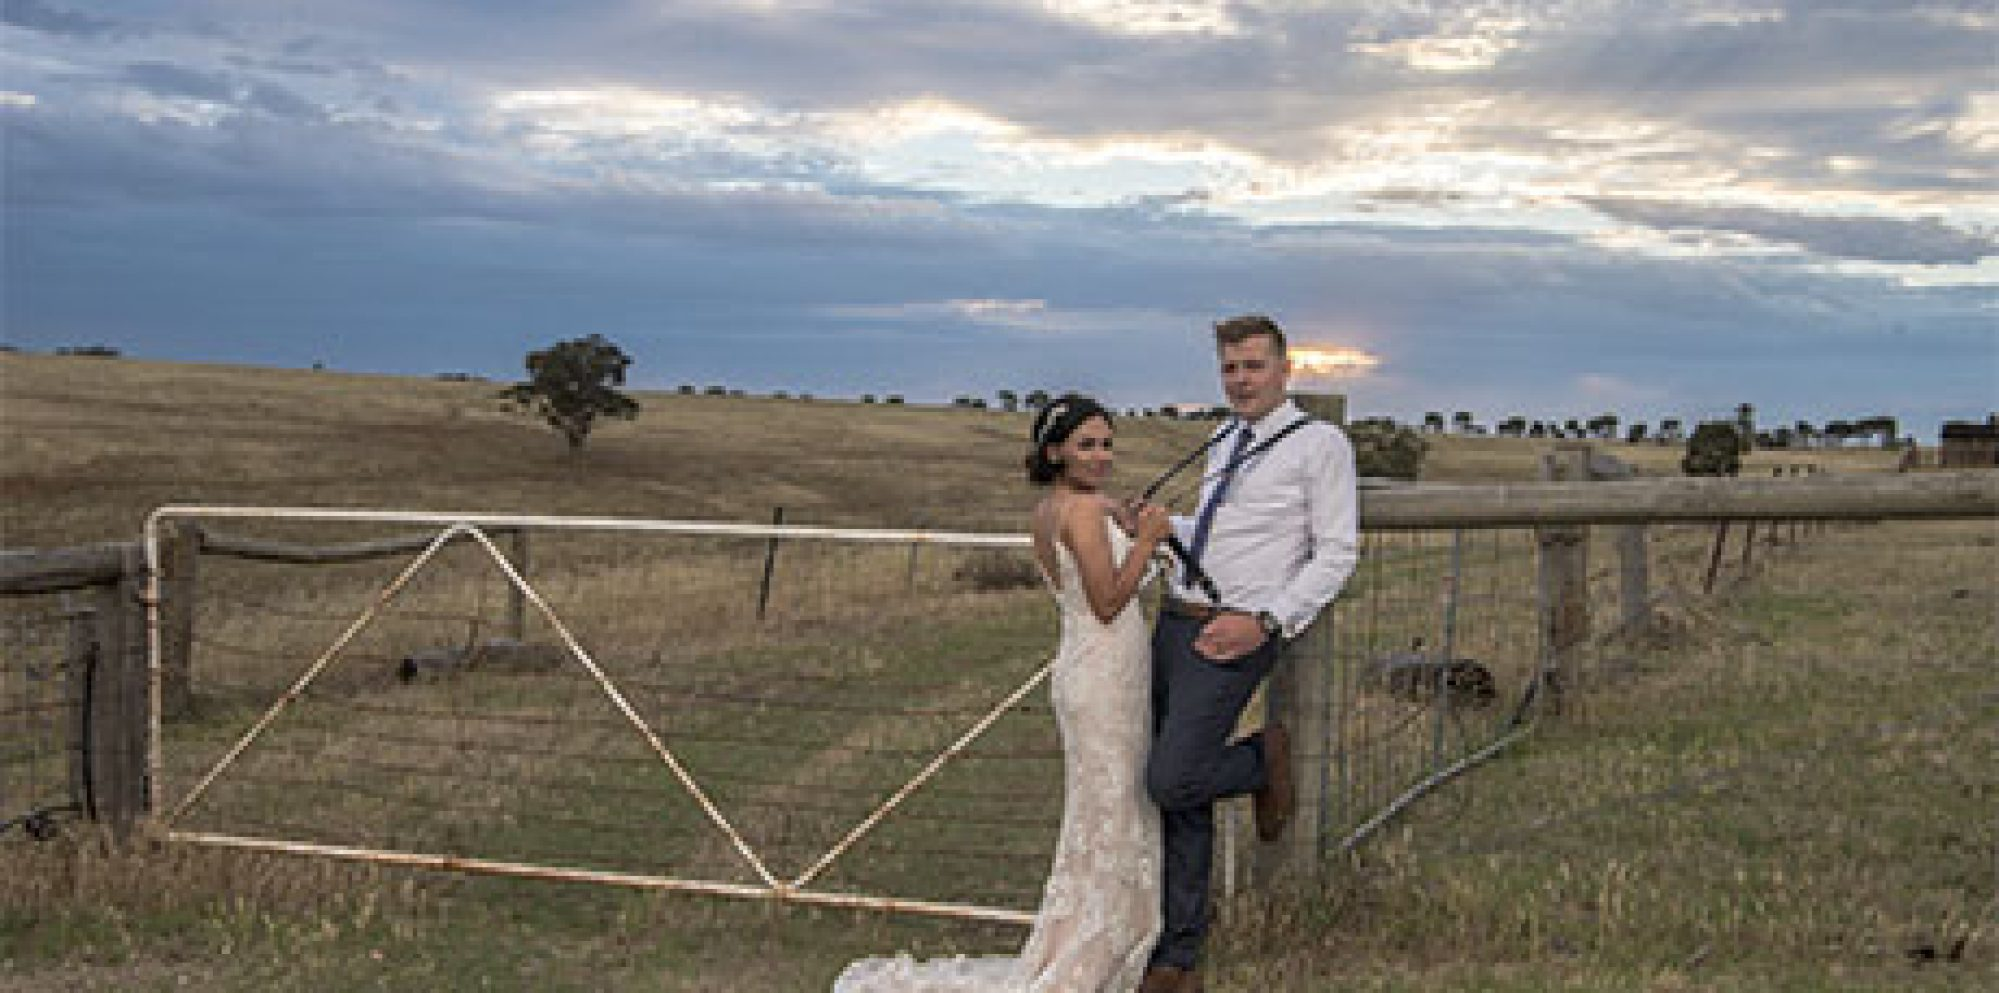 Simone & samuel warrawong woolshed wedding photography